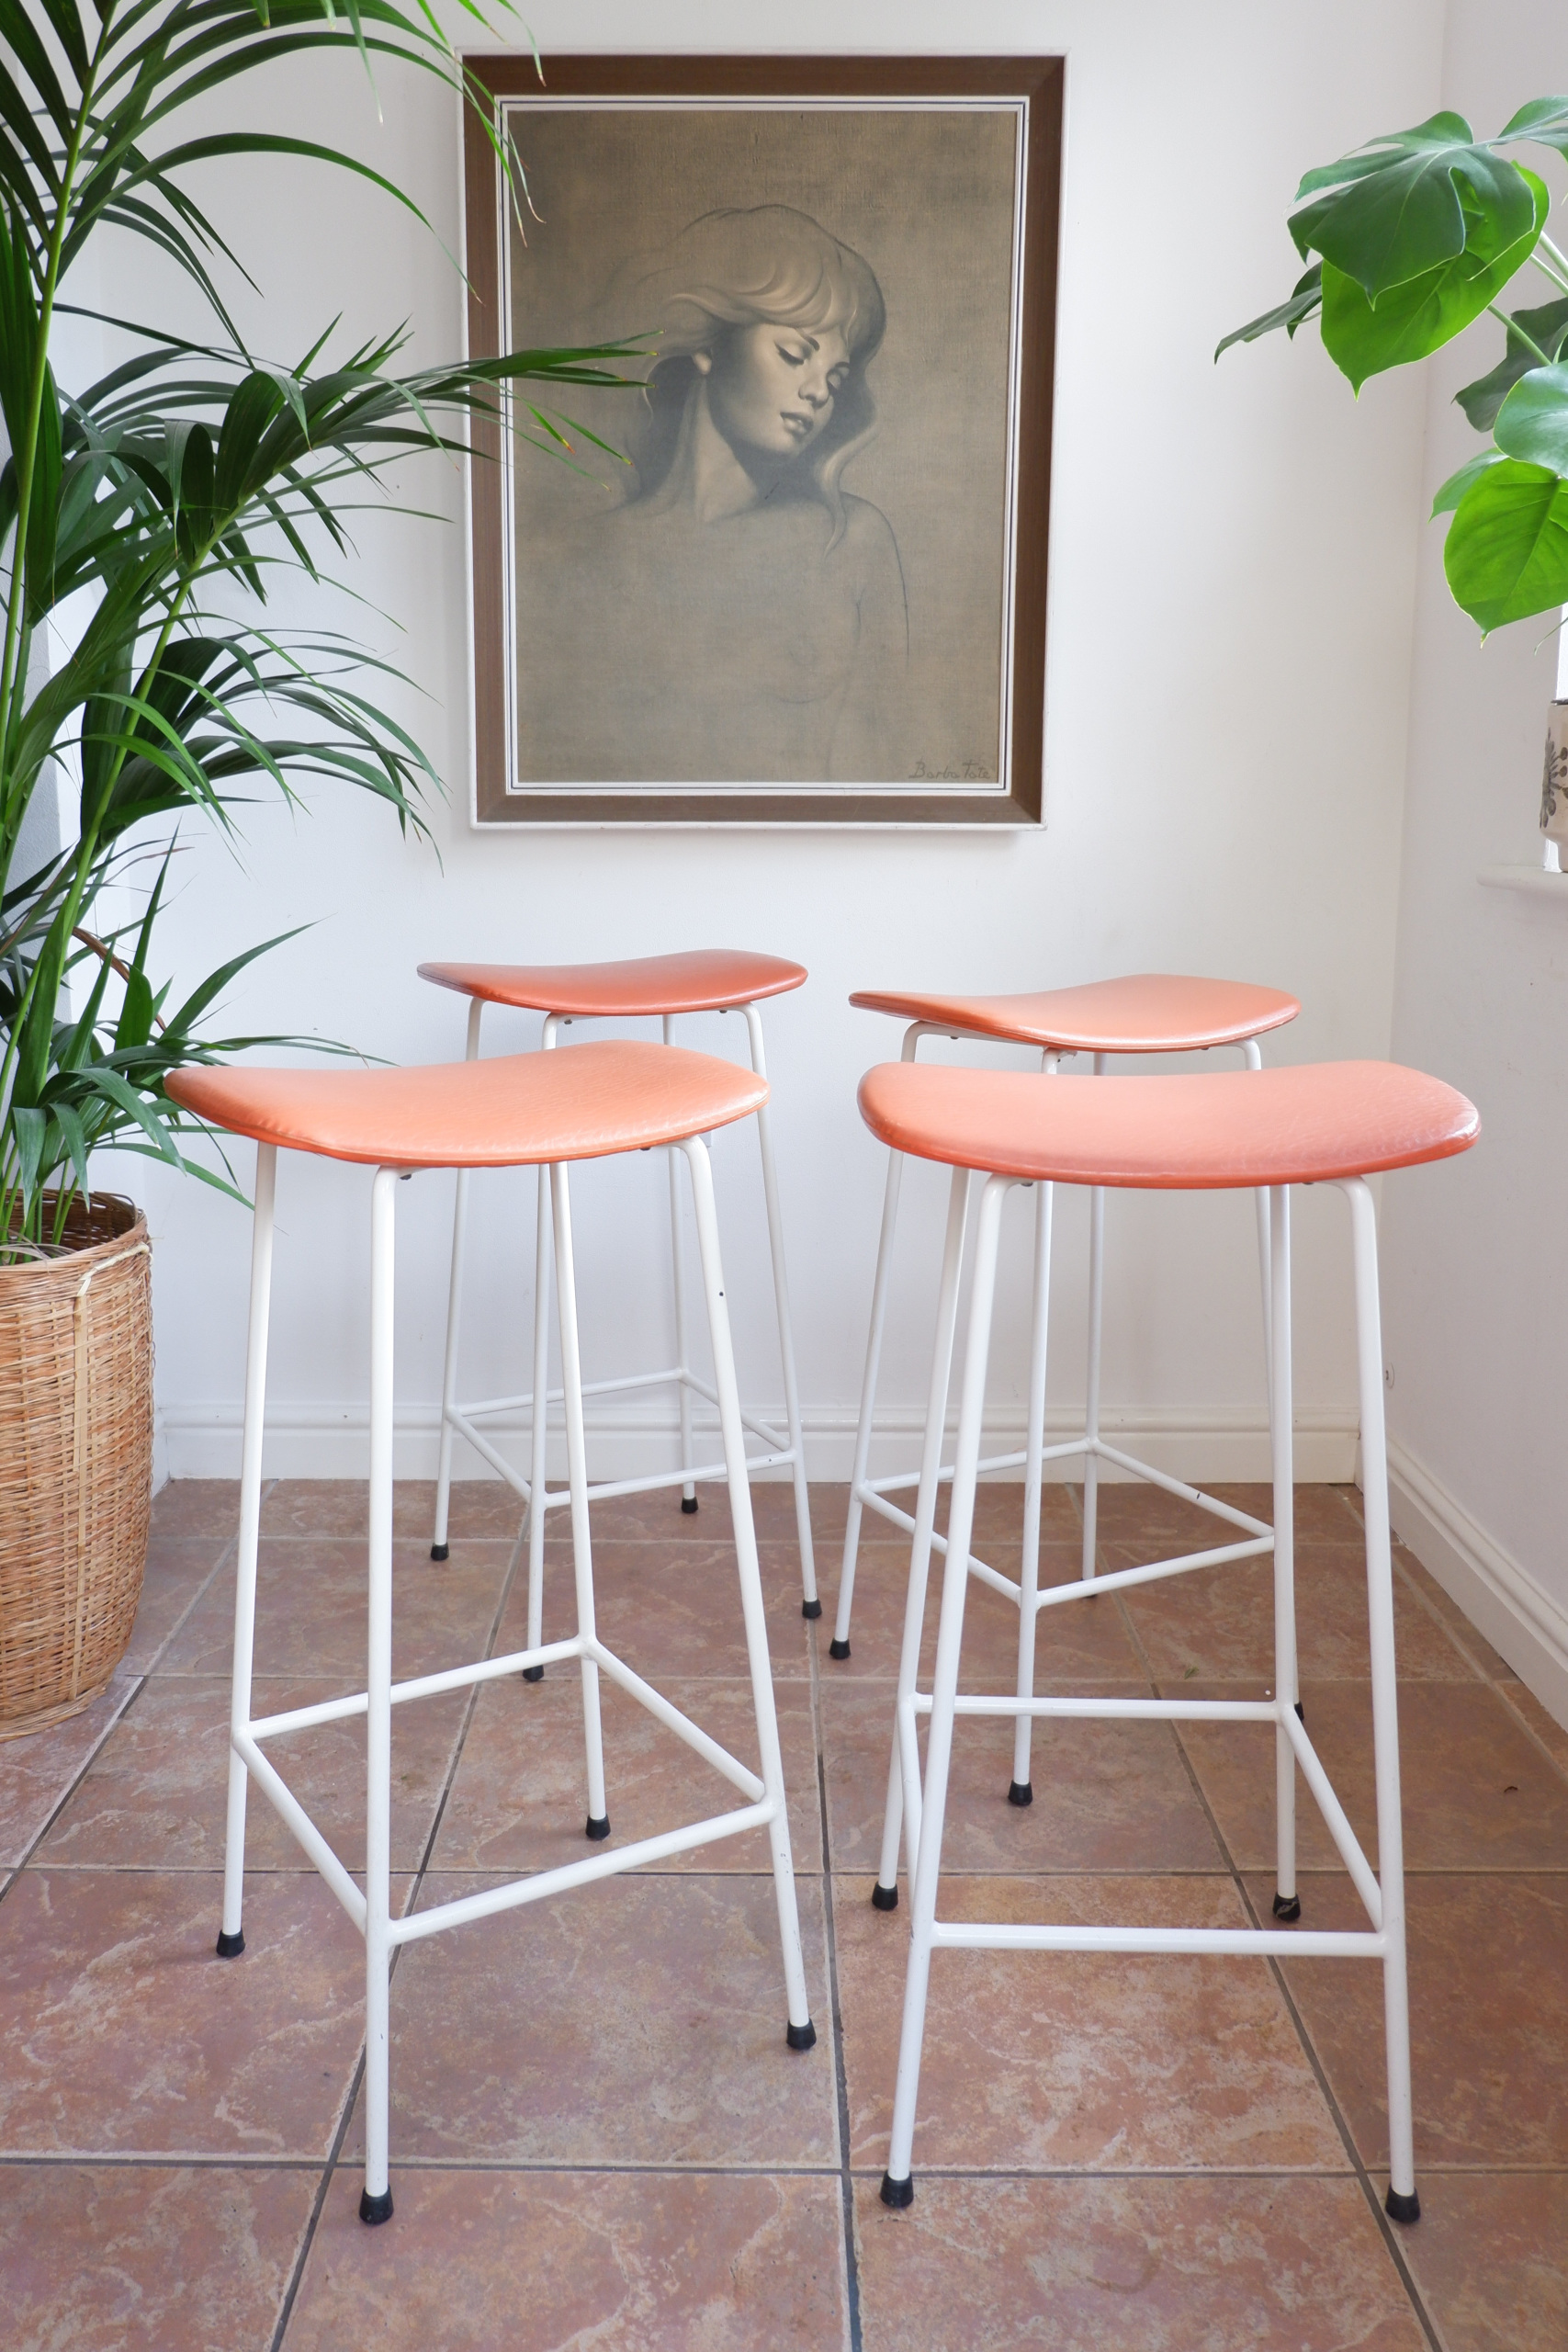 Sensational Set Of 4 Orange Mid Century Kandya Bar Stools Frank Guille Caraccident5 Cool Chair Designs And Ideas Caraccident5Info